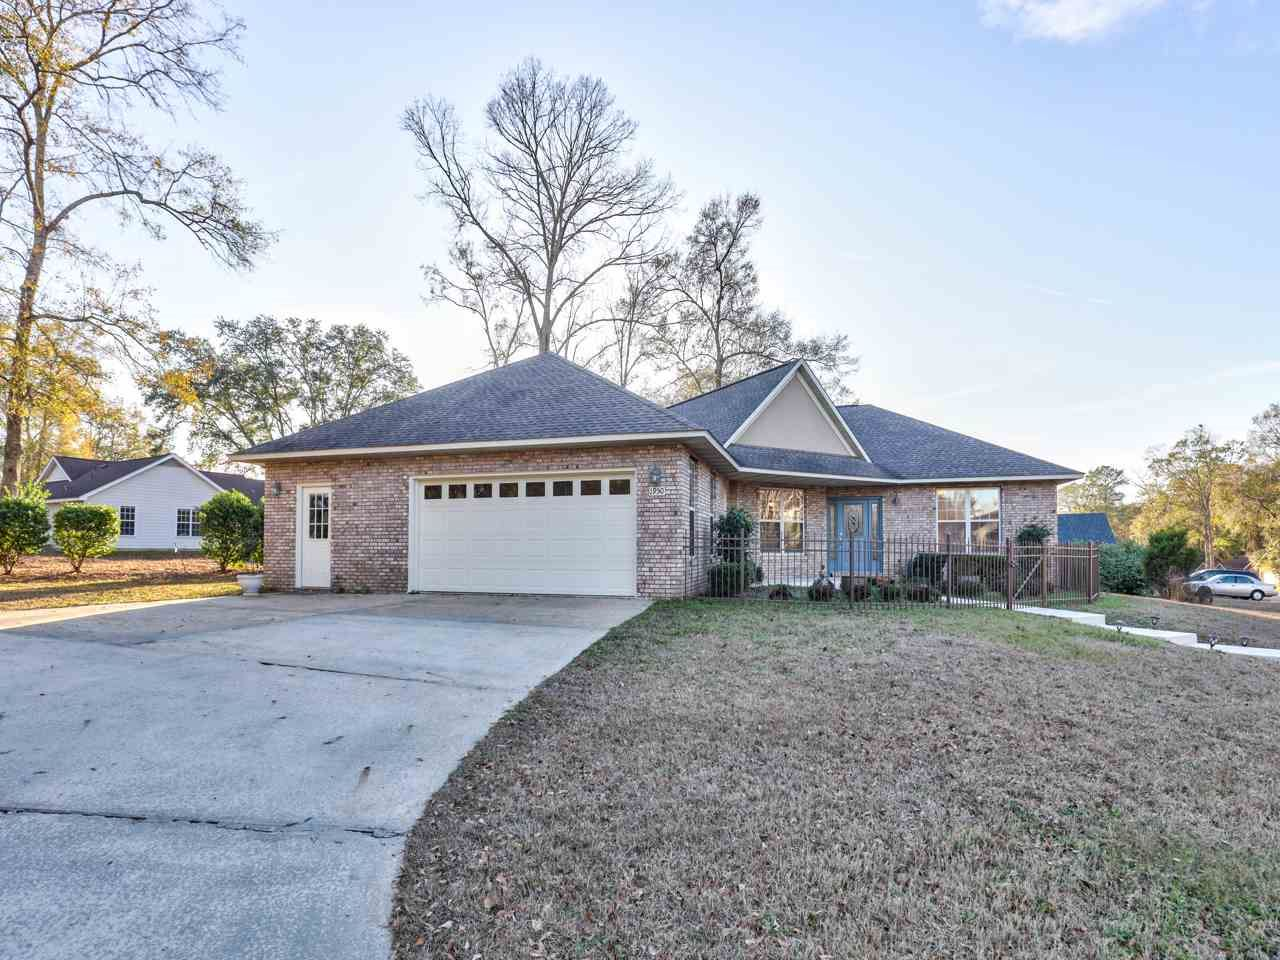 Photo of 1950 Celtic Road, TALLAHASSEE, FL 32317 (MLS # 327632)